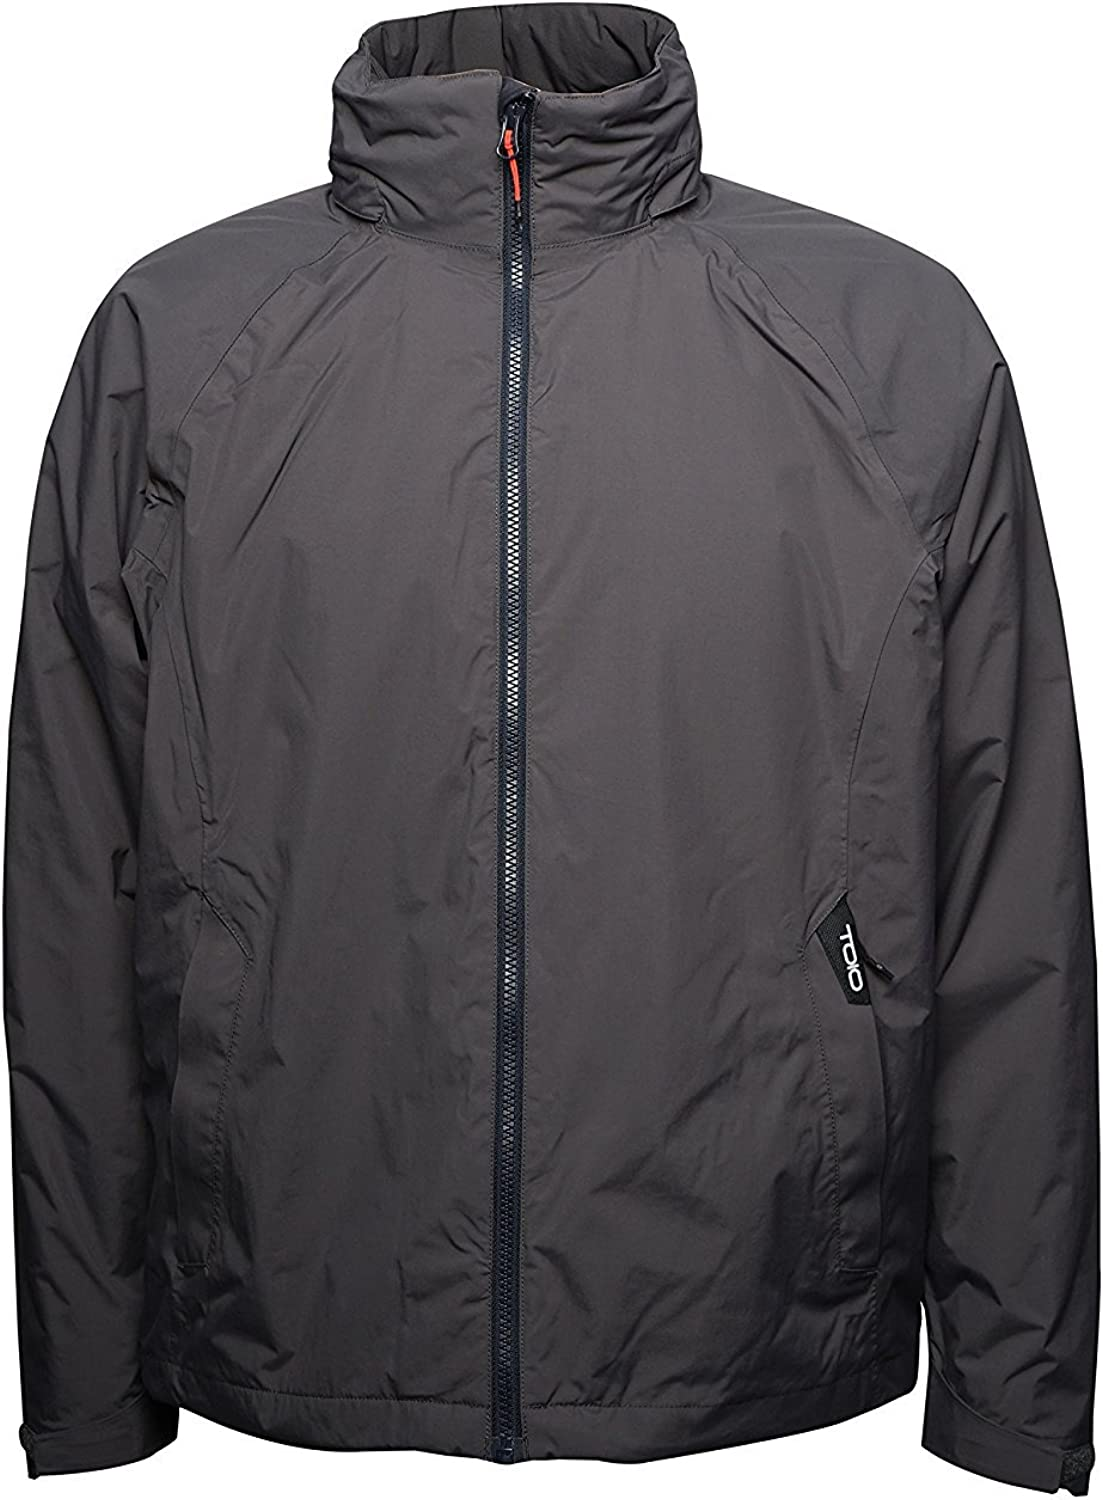 TOIOSchooner Waterproof Jacket Waterproof, breathable technical jacket with primaloft padding and thermowelded seams